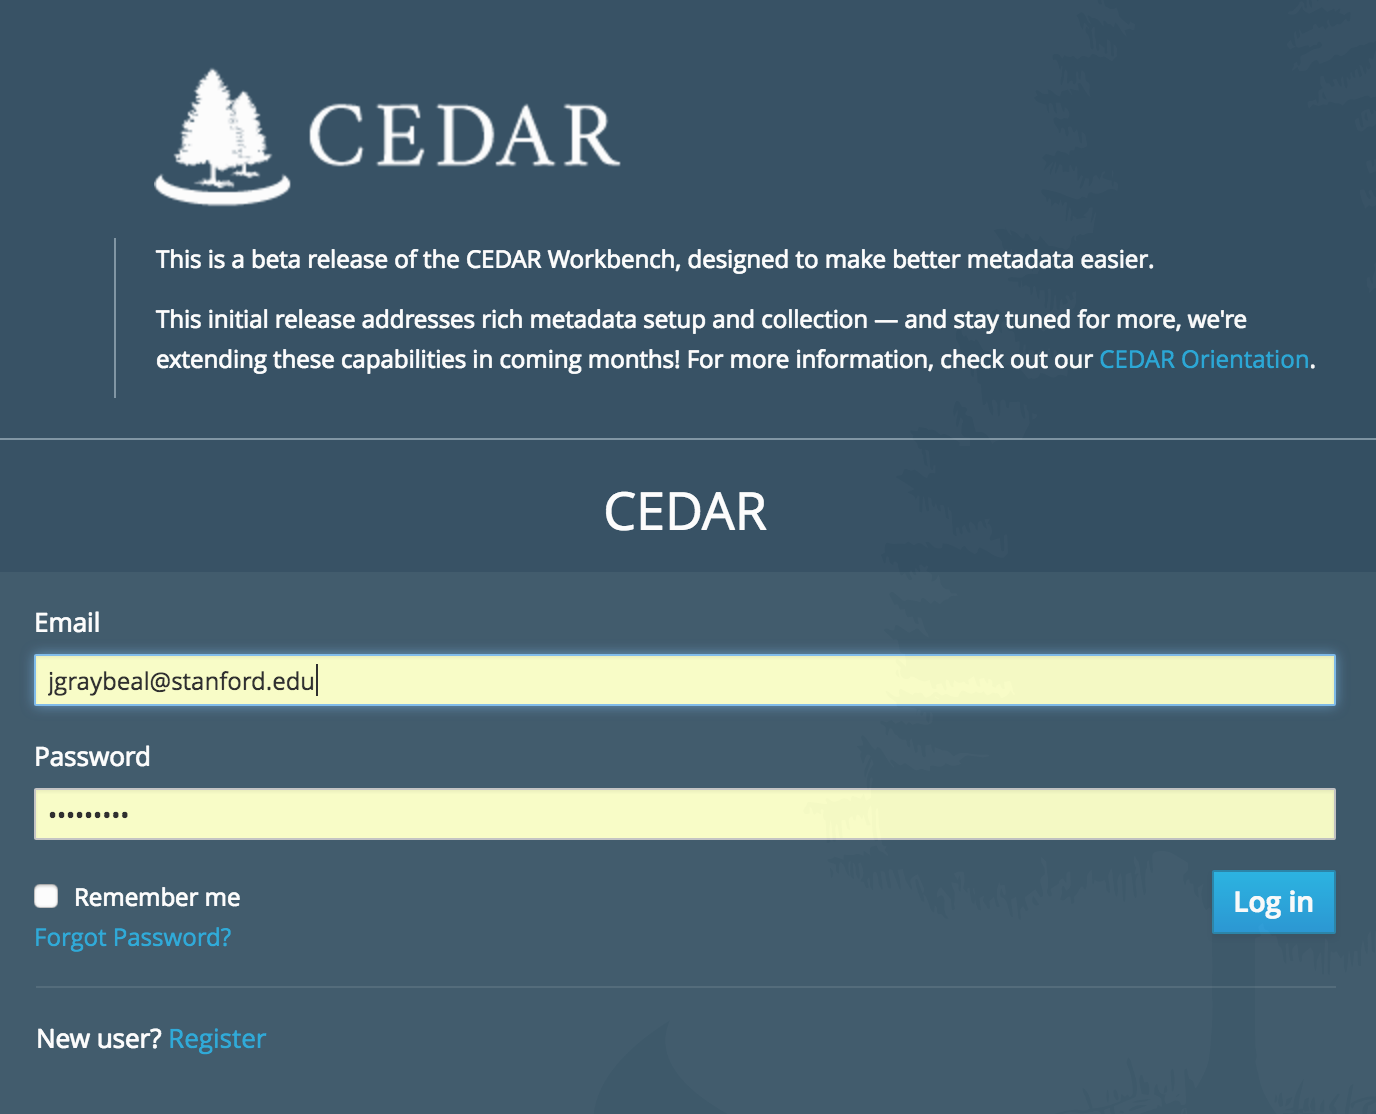 CEDAR Login at Alpha Release